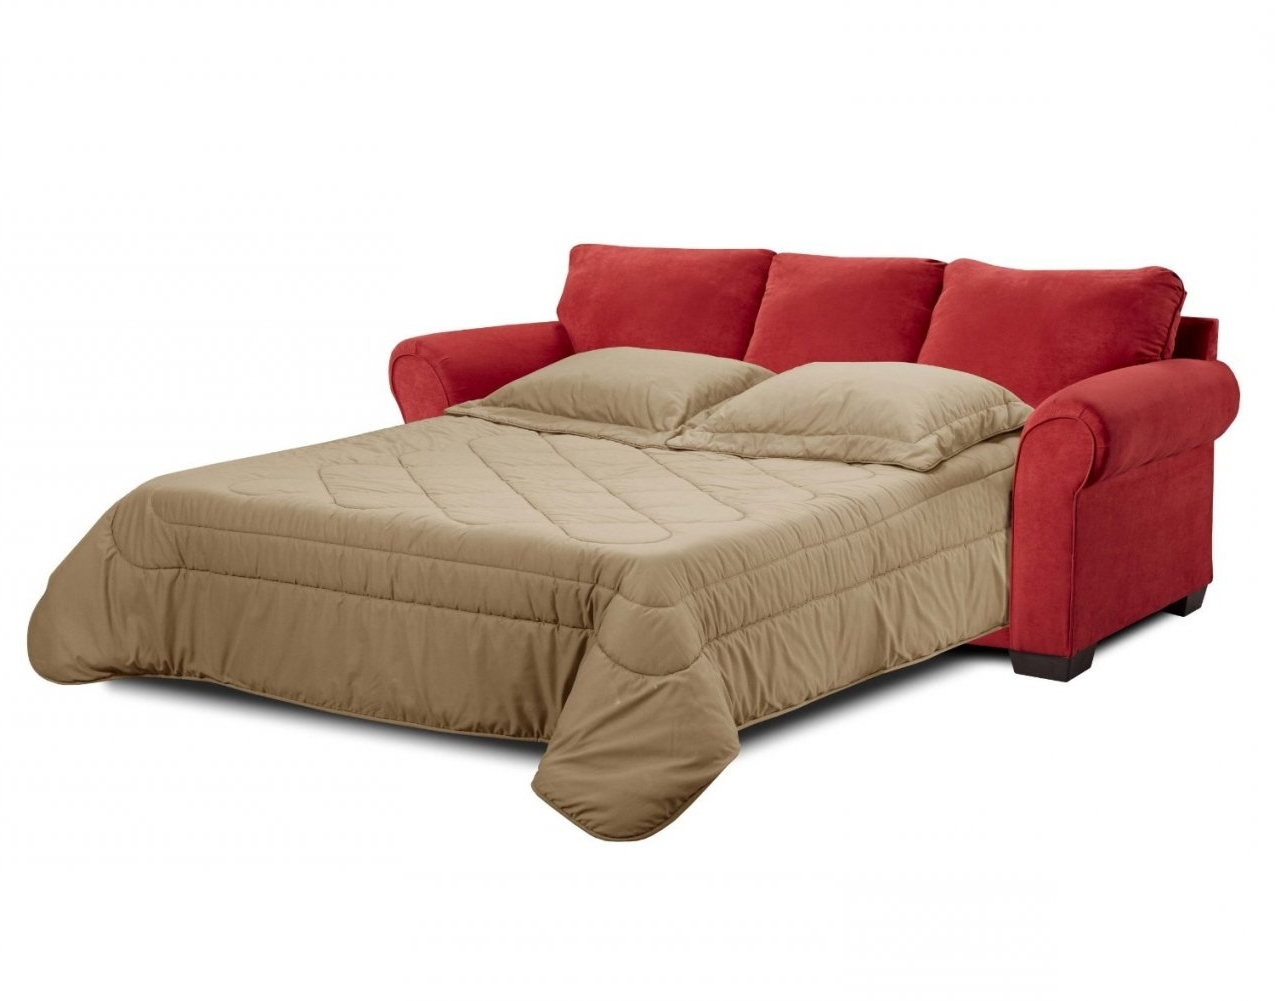 Most Recently Released Queen Size Sleeper Sofa 98 On Sofa Room Ideas With Queen Intended Intended For Queen Size Sofas (View 5 of 15)